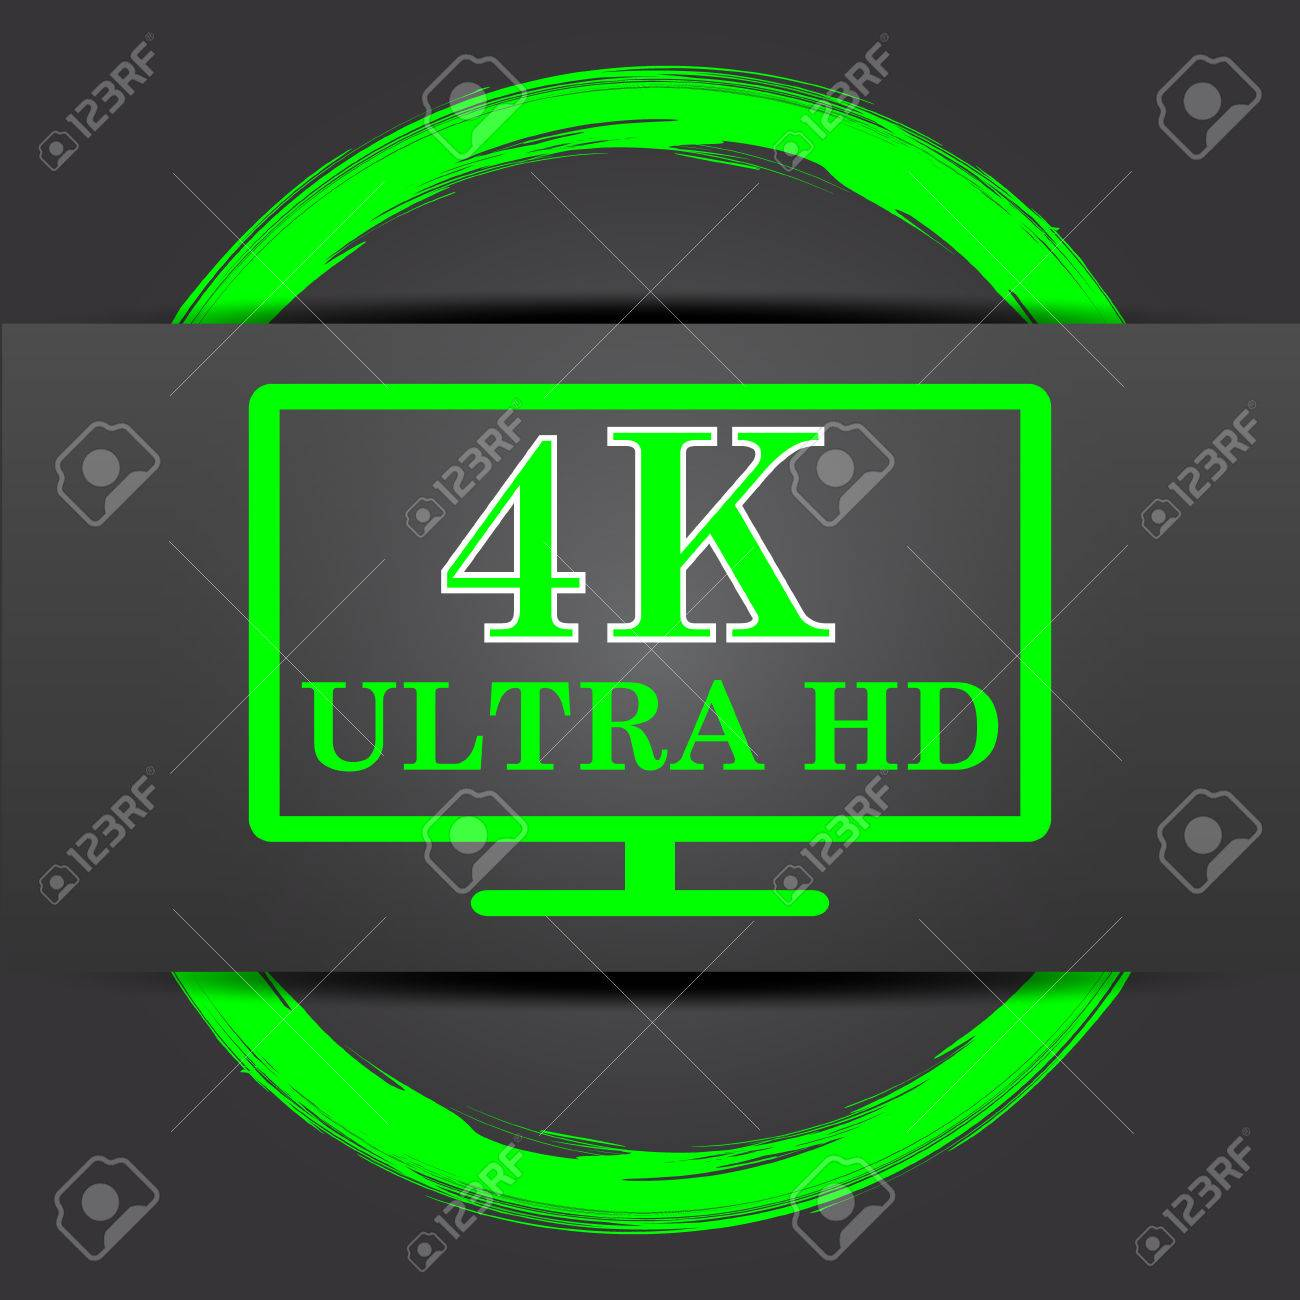 4k Ultra Hd Icon Internet Button With Green On Grey Background